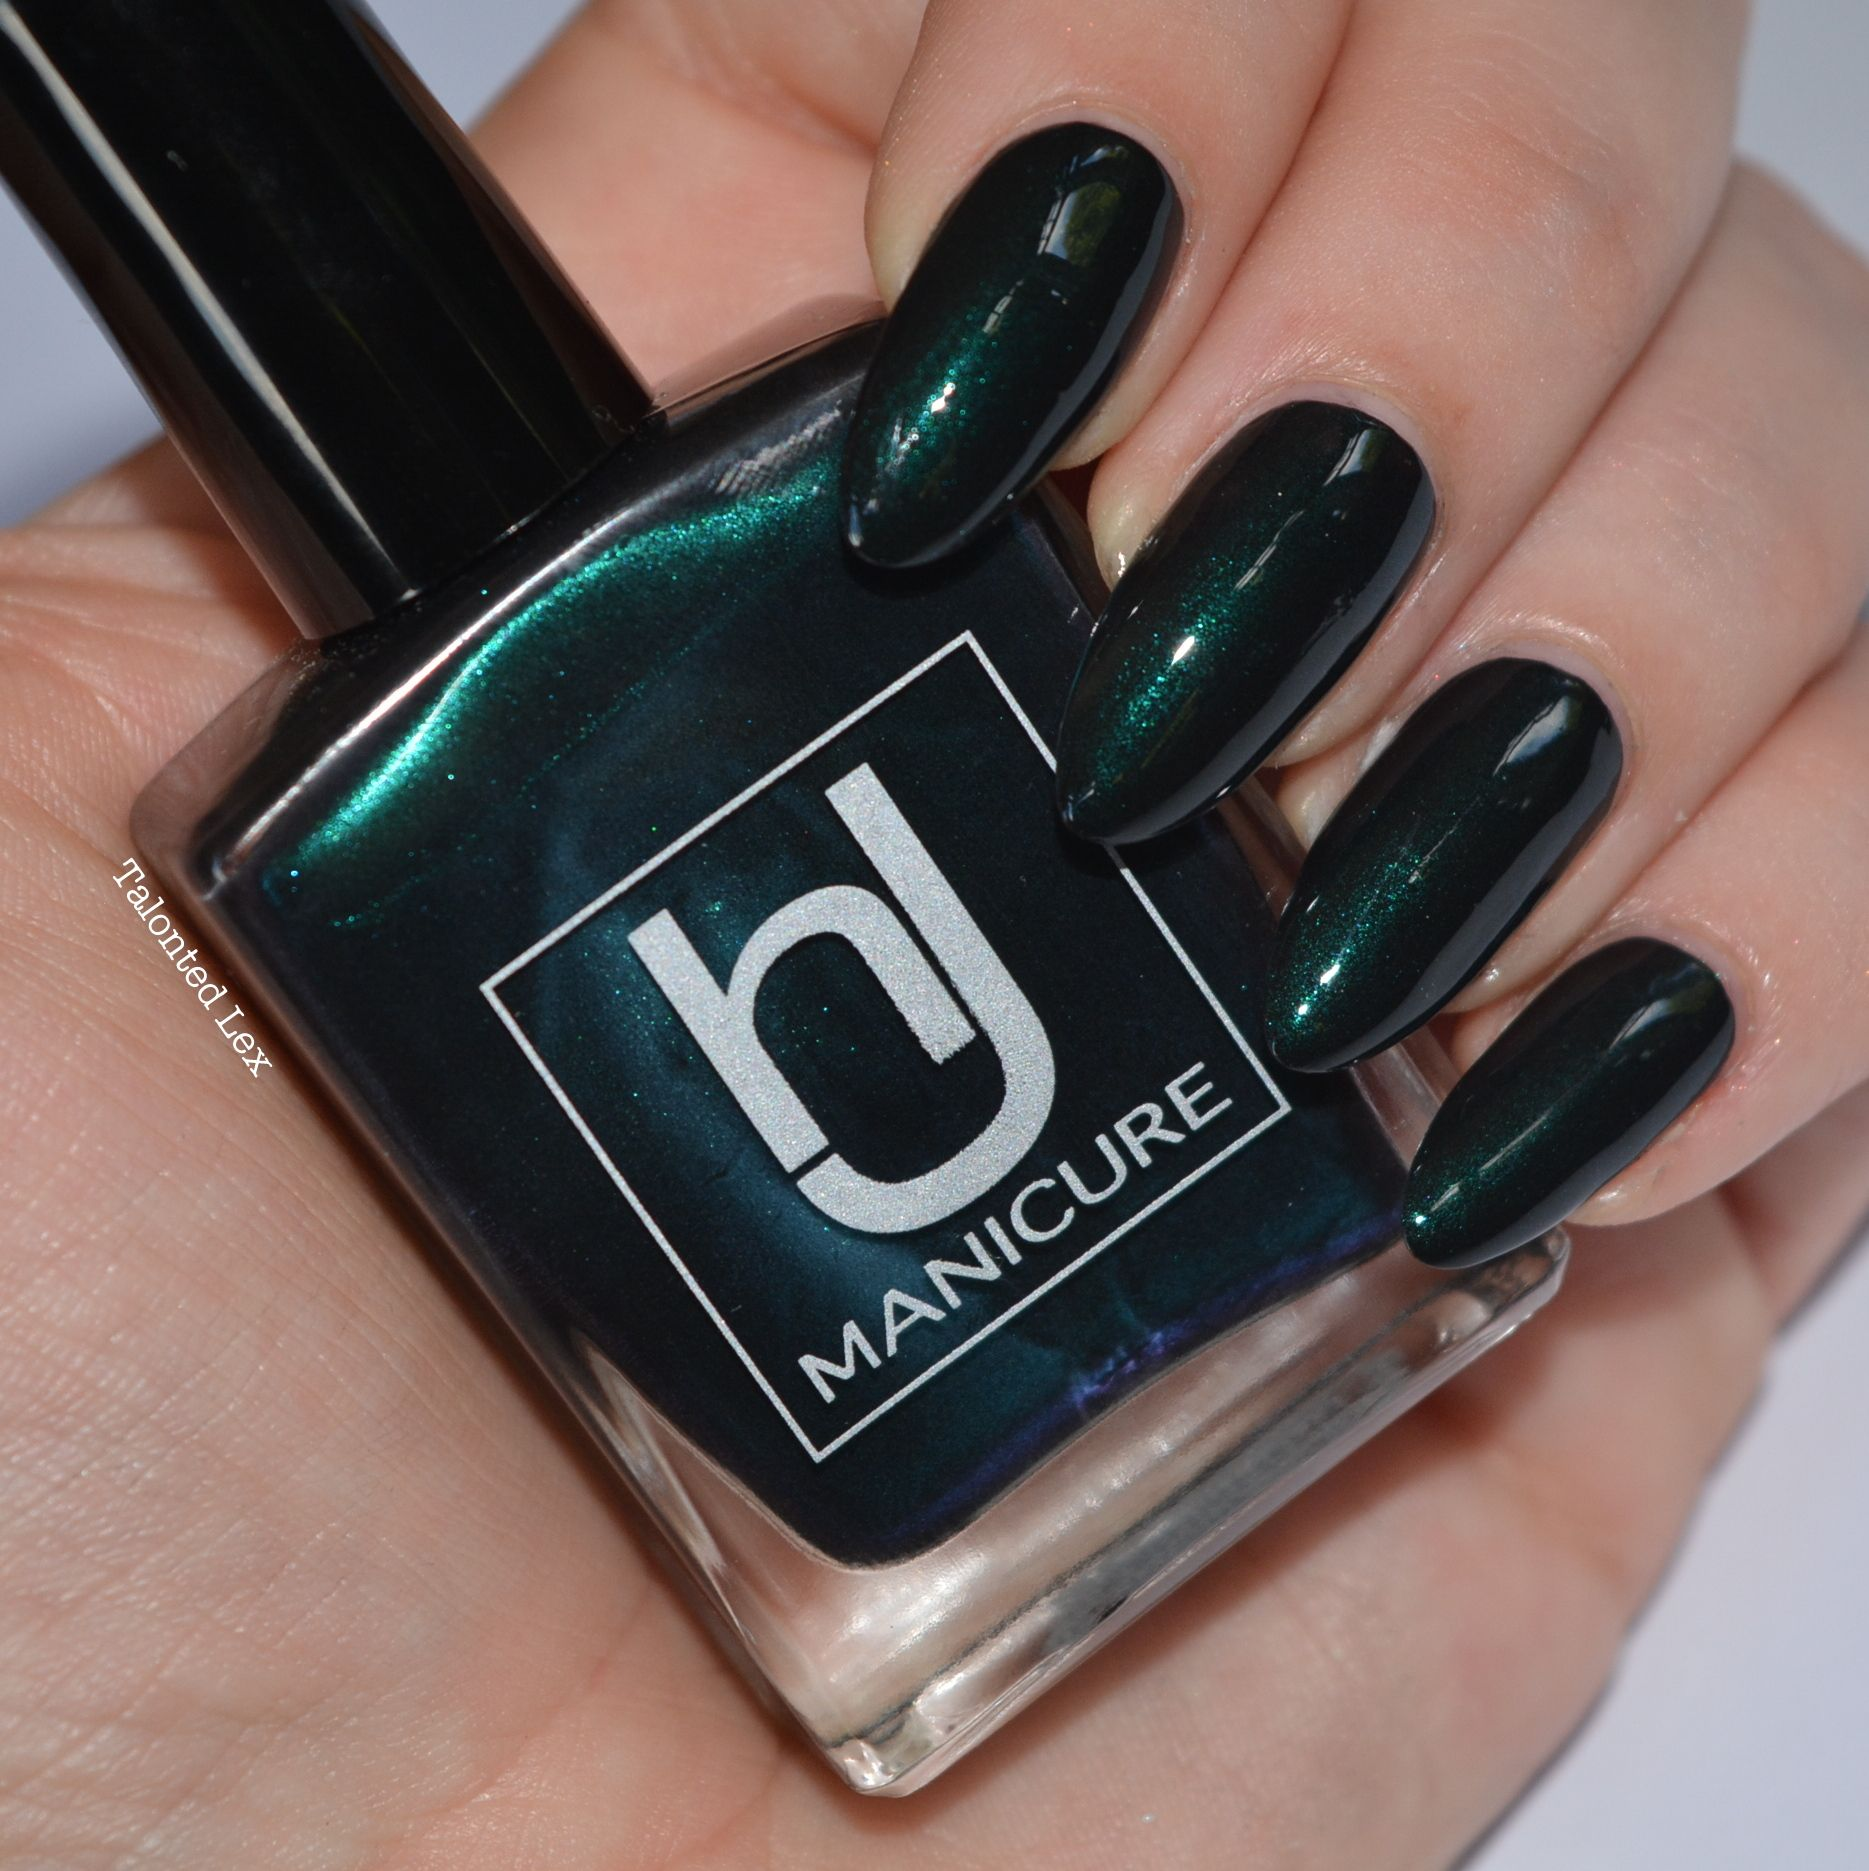 HJ Manicure Nail Varnish   Varnishes, Green nail and Manicure